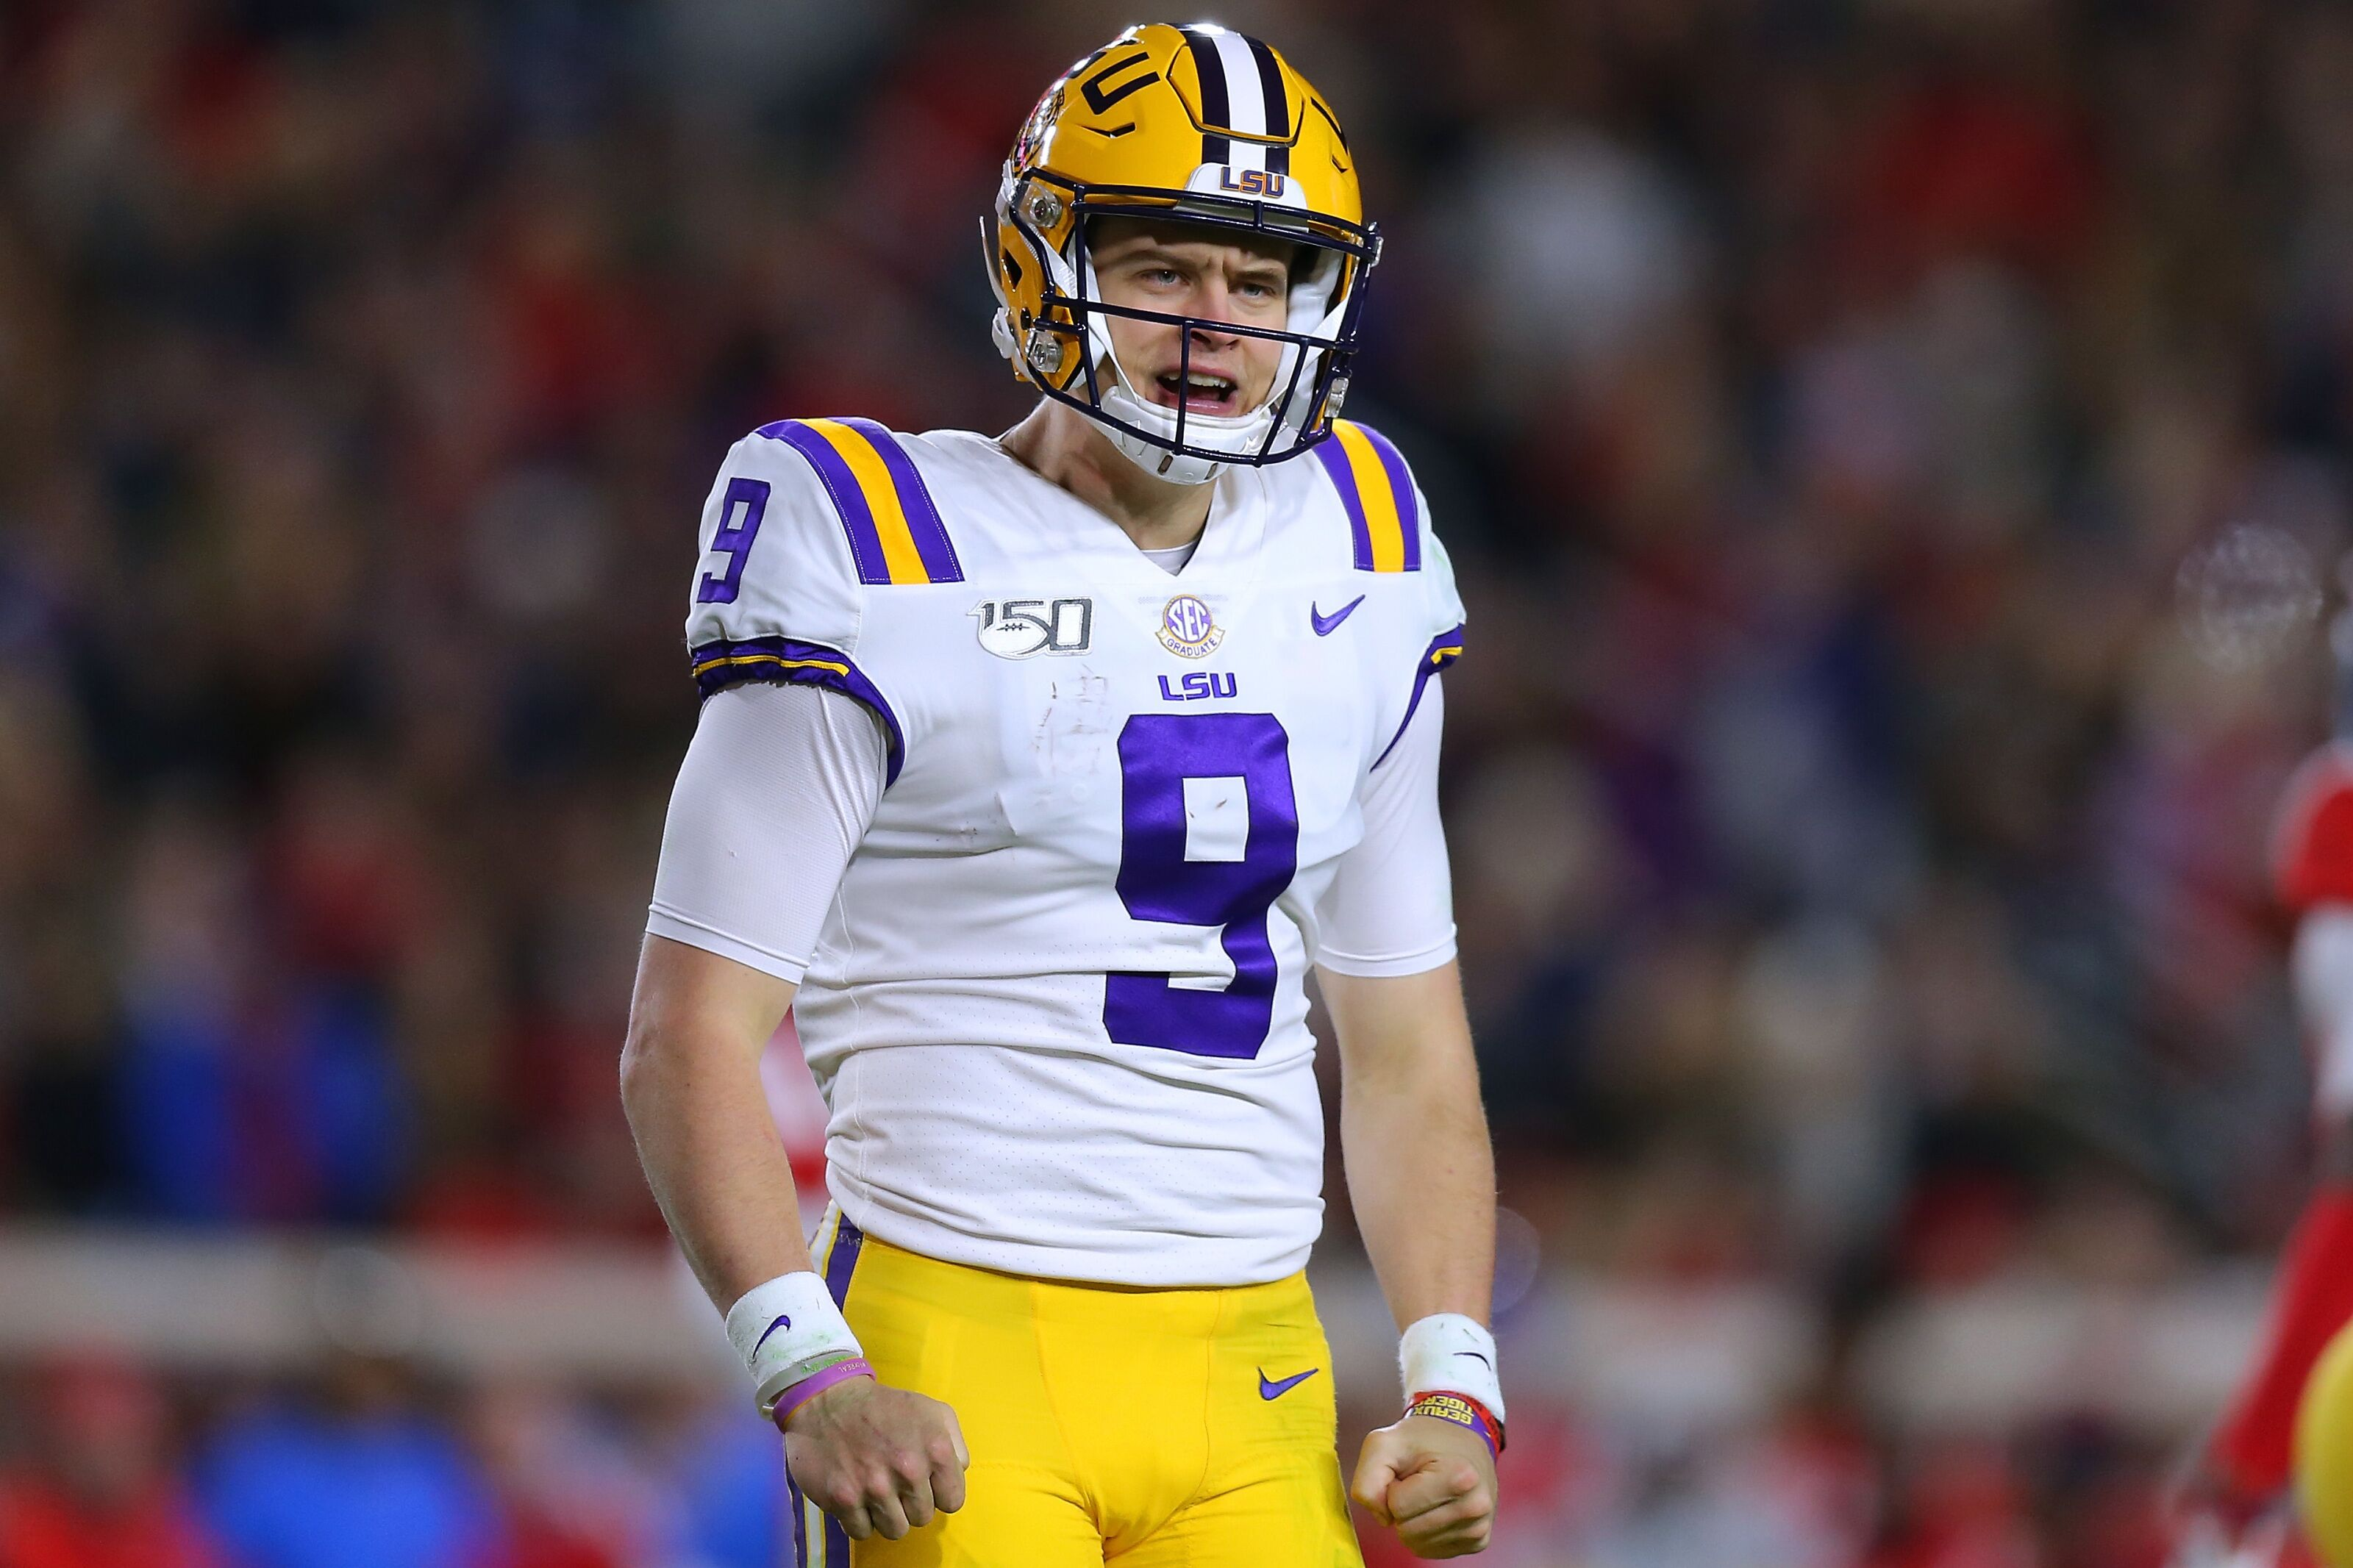 Urban Meyer's Joe Burrow comment shows why LSU QB will star in NFL